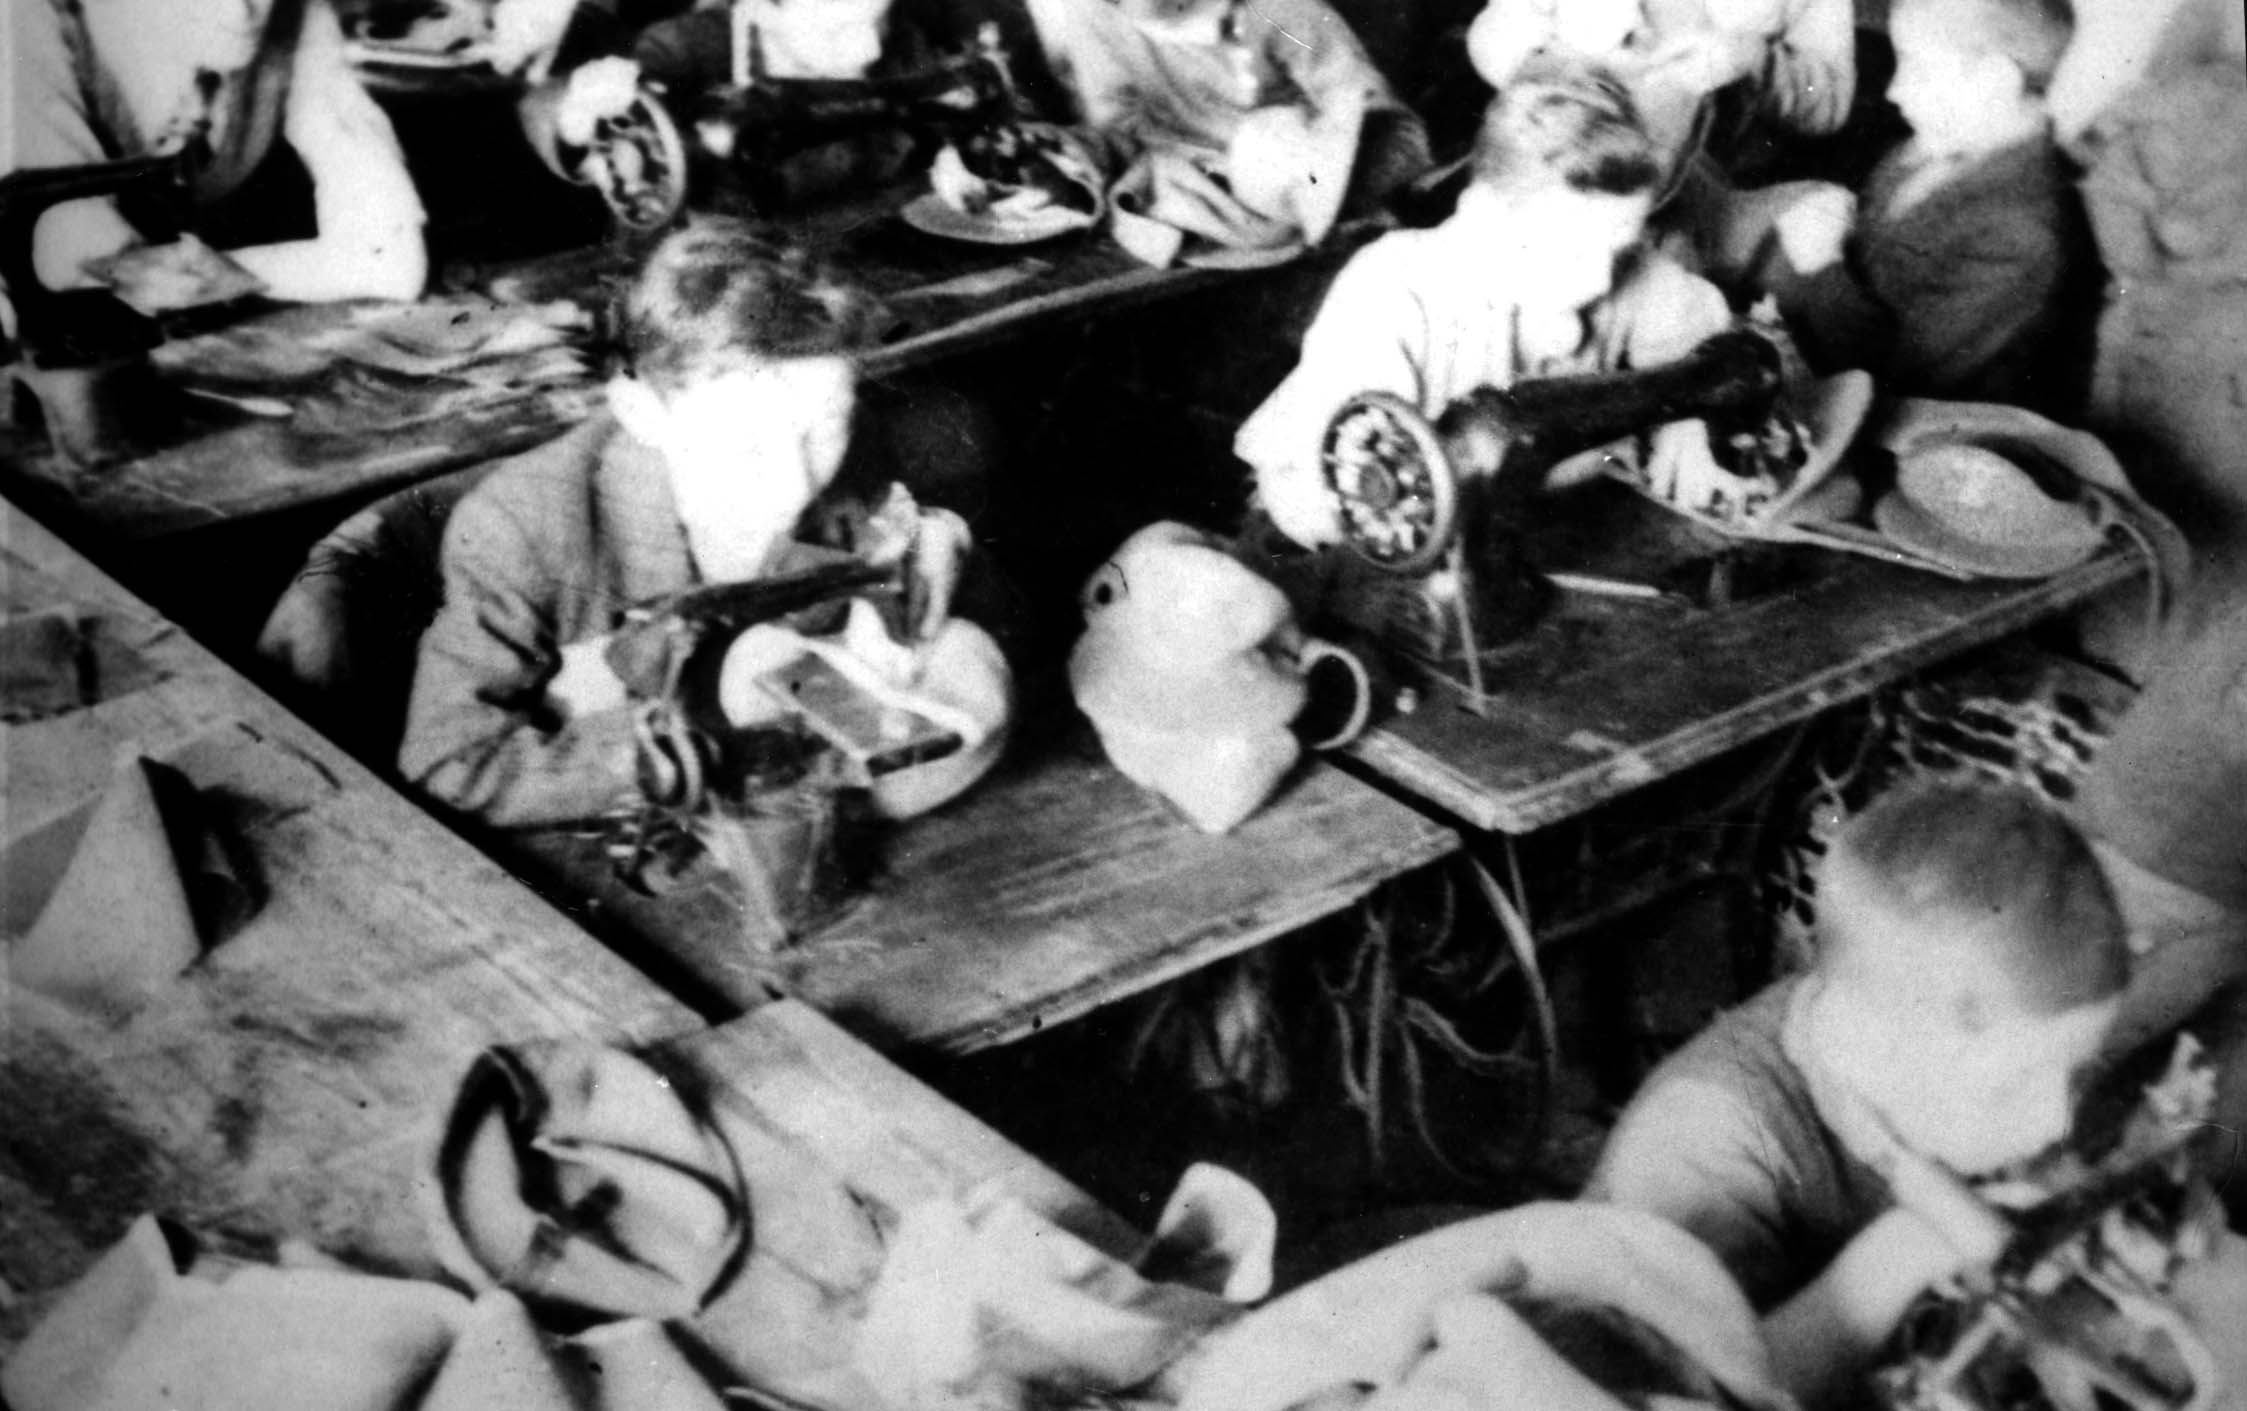 Children's sewing factory in the ghetto